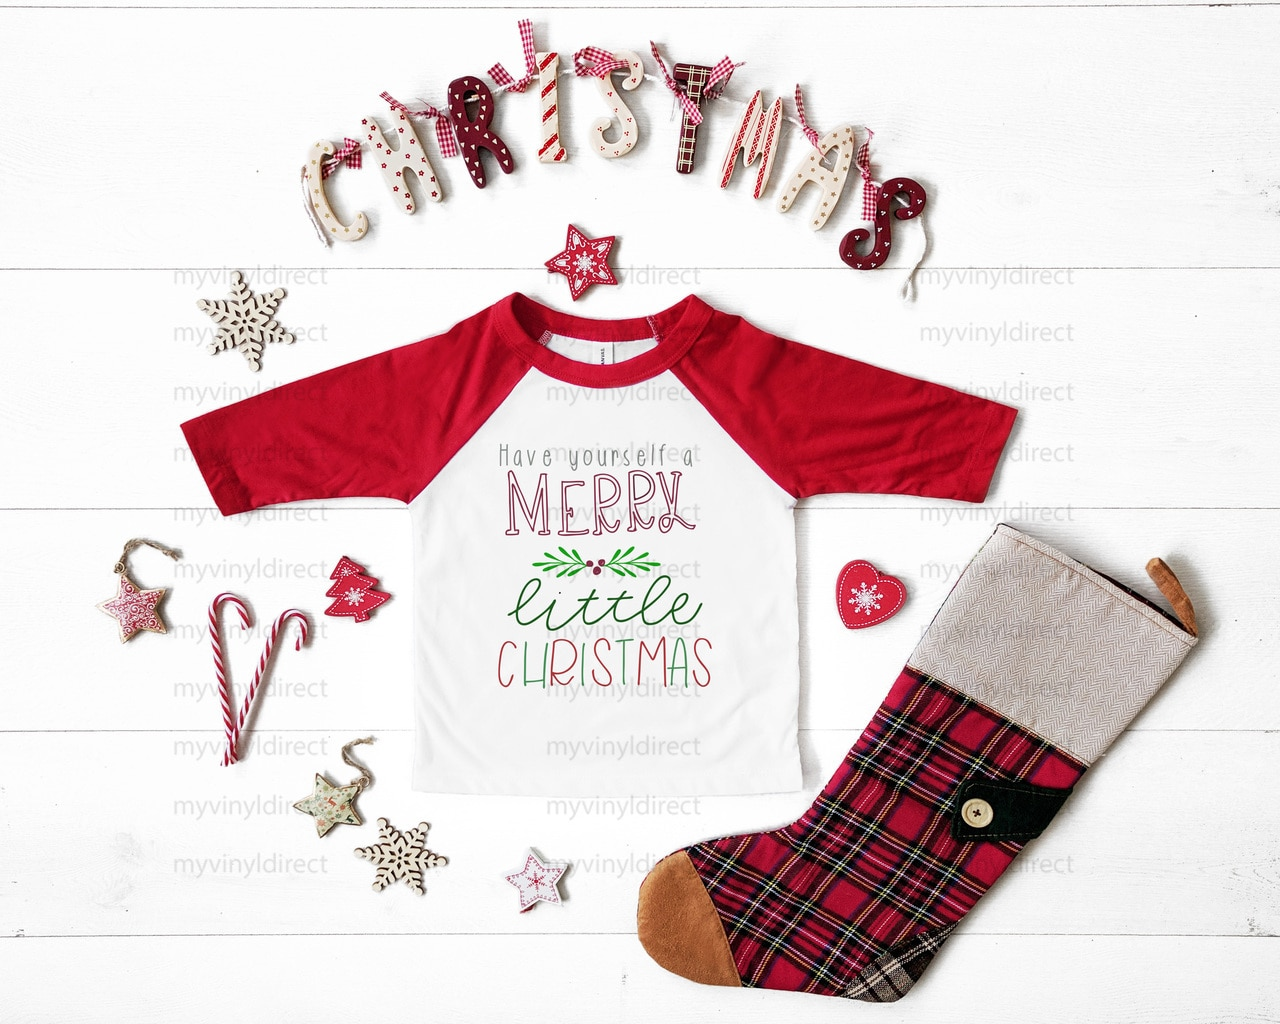 Merry Little Christmas 2011.Have Yourself A Merry Little Christmas Cotton Transfer